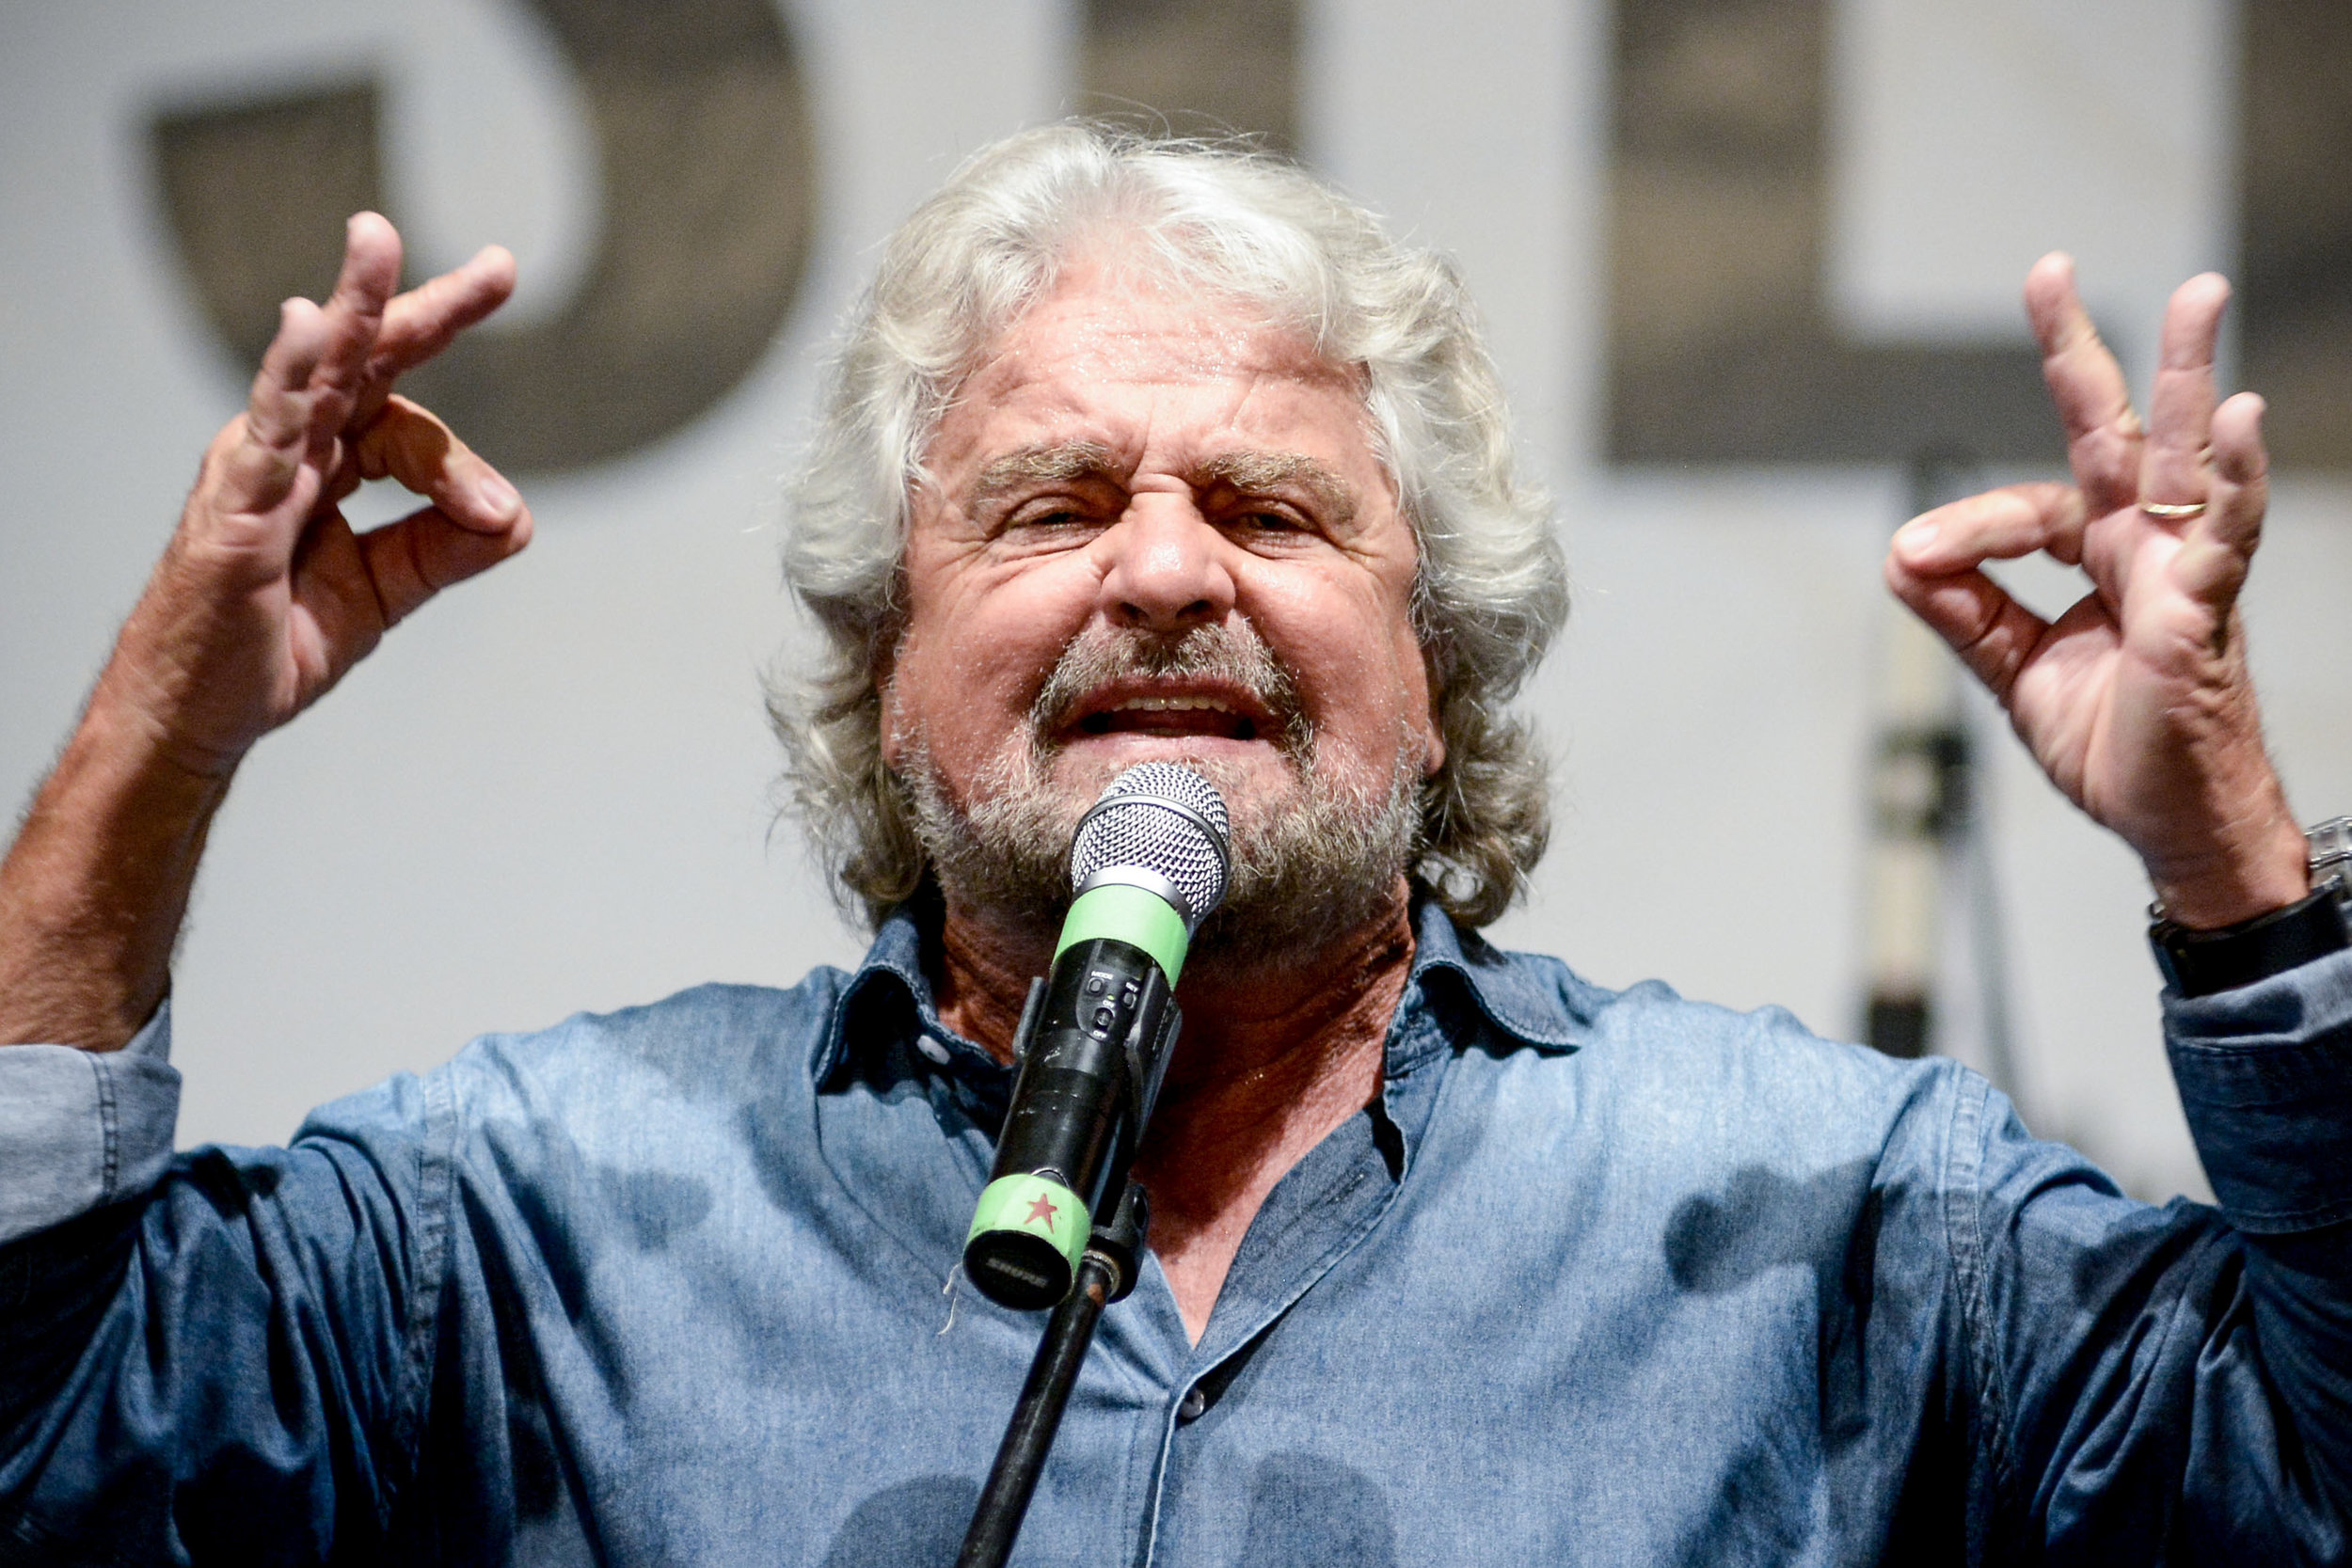 Founder of the 5-Star Movement Beppe Grillo gestures as he speaks during a rally in Palermo, southern Italy, September 24, 2016.